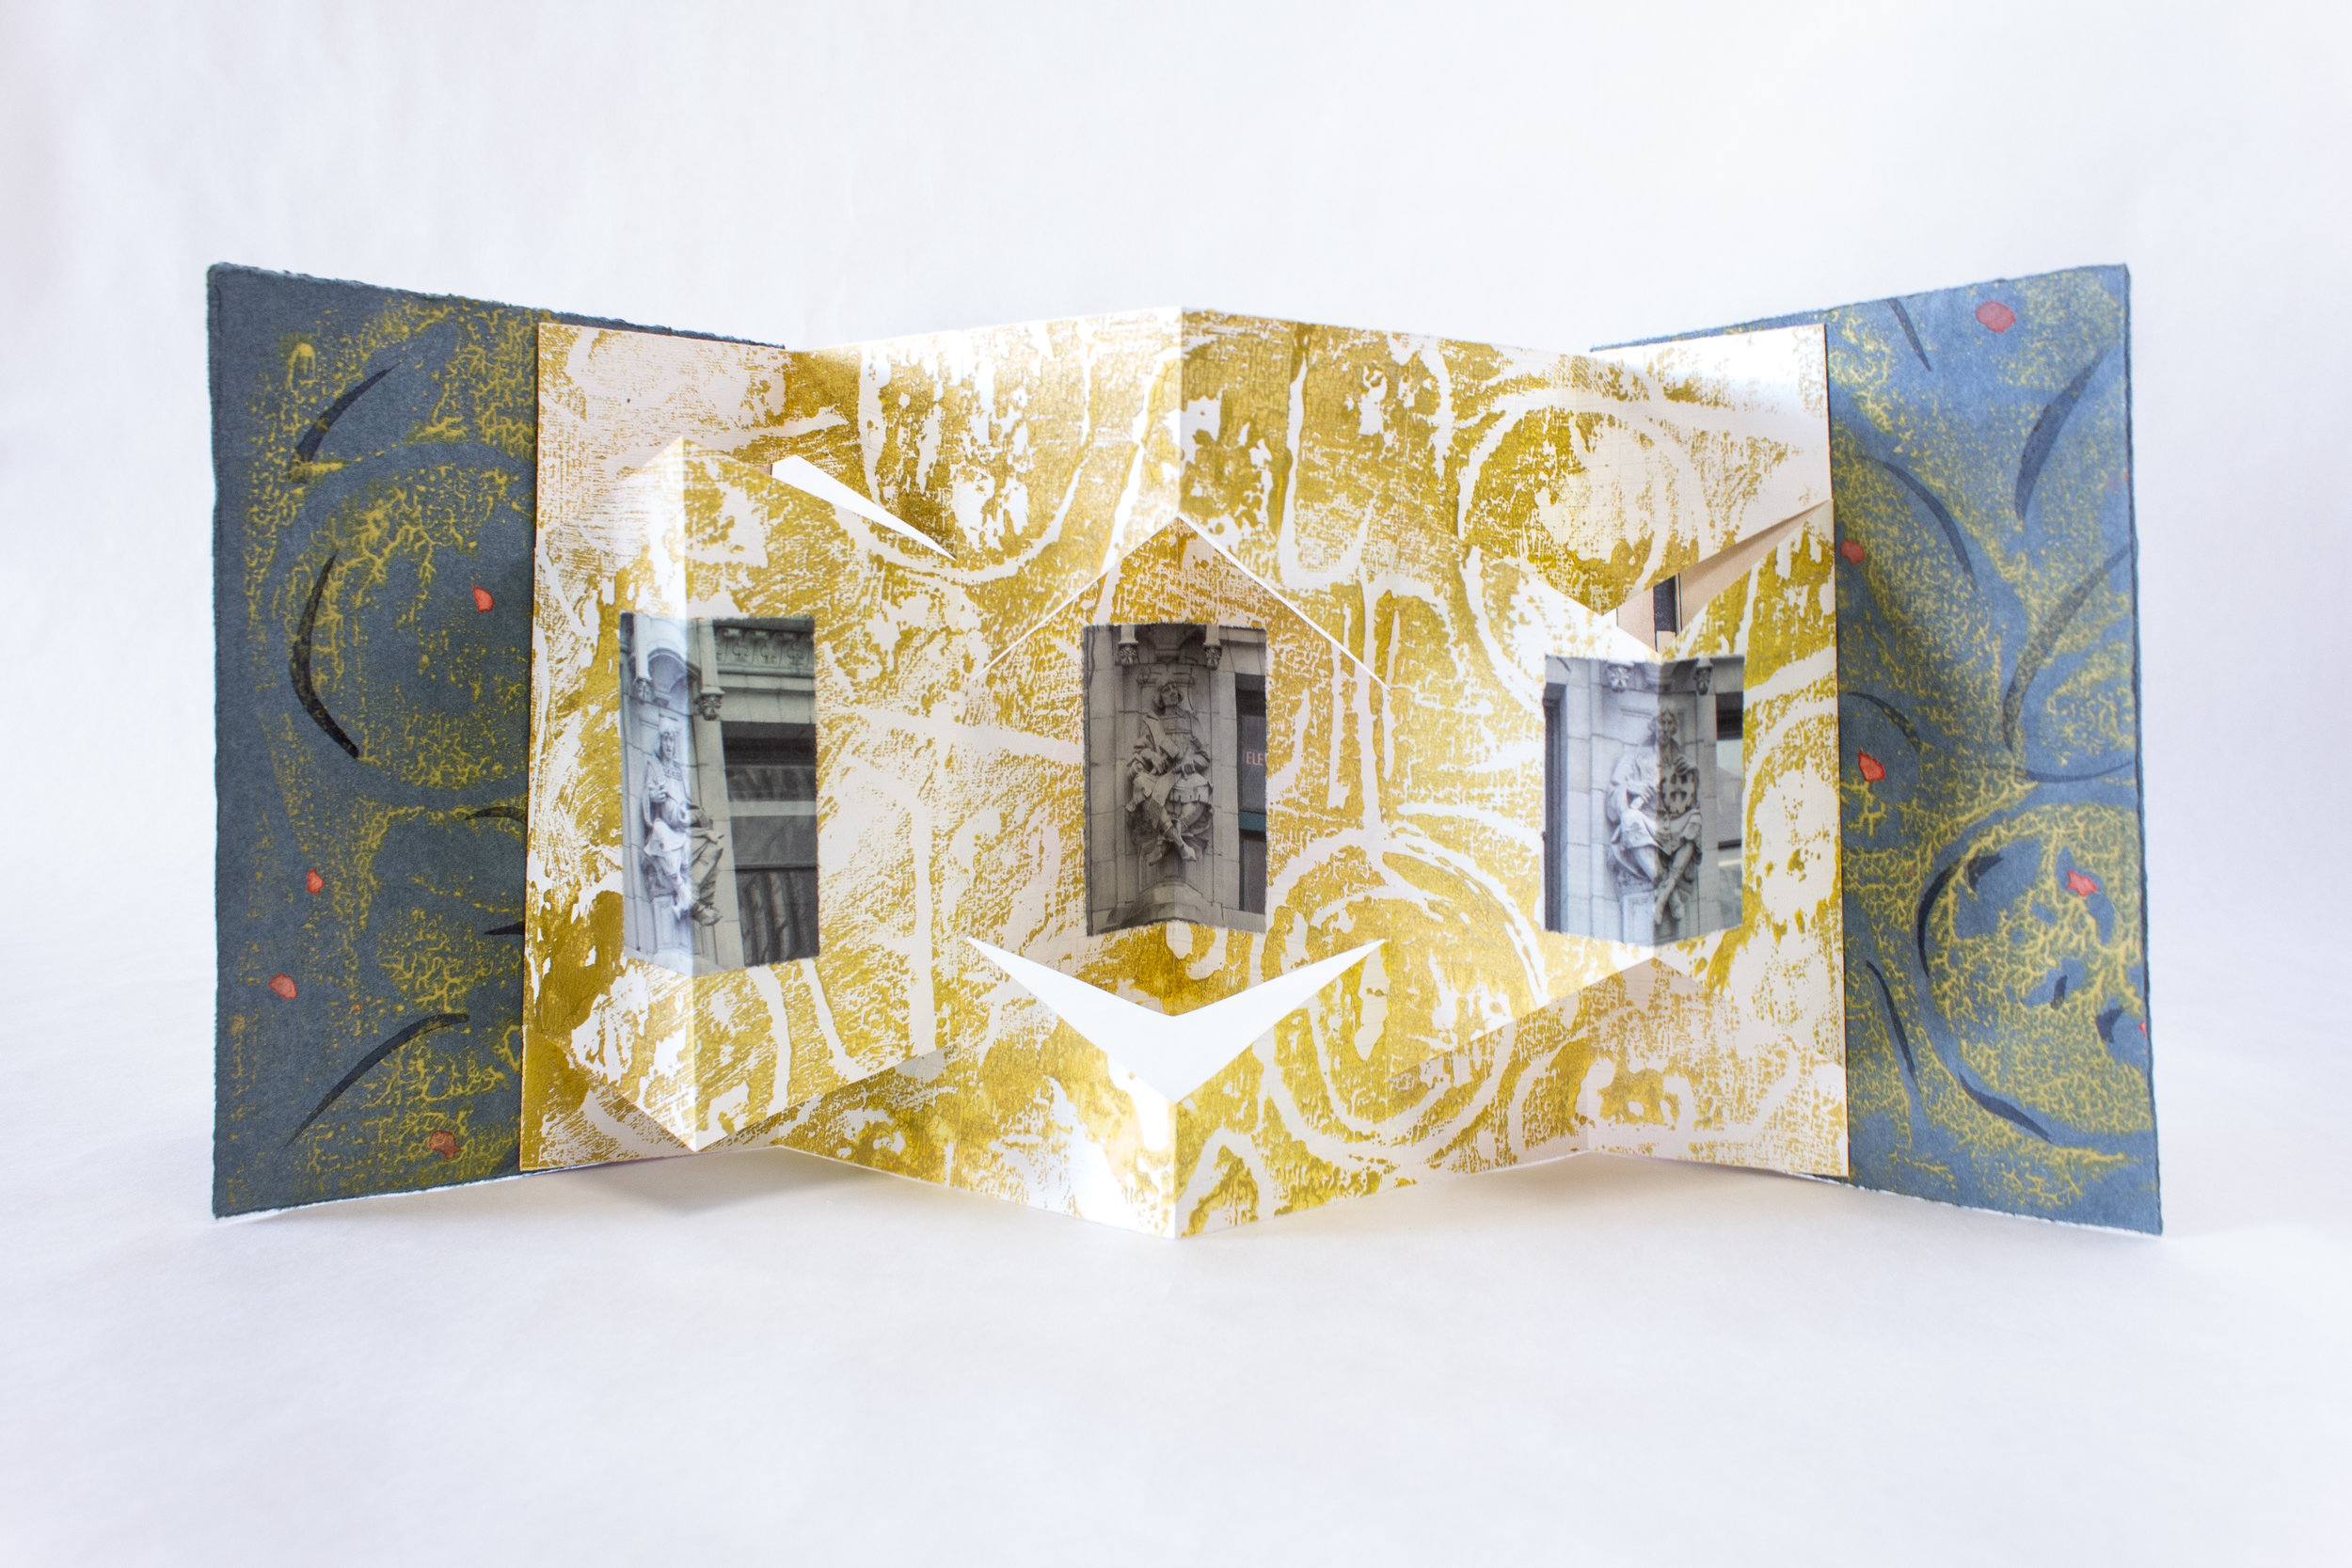 """Claire Marcus, """"Arts and Sciences,"""" Pop-up accordion, relief printed, photographs, 2019 $95, Bethlehem, PA"""